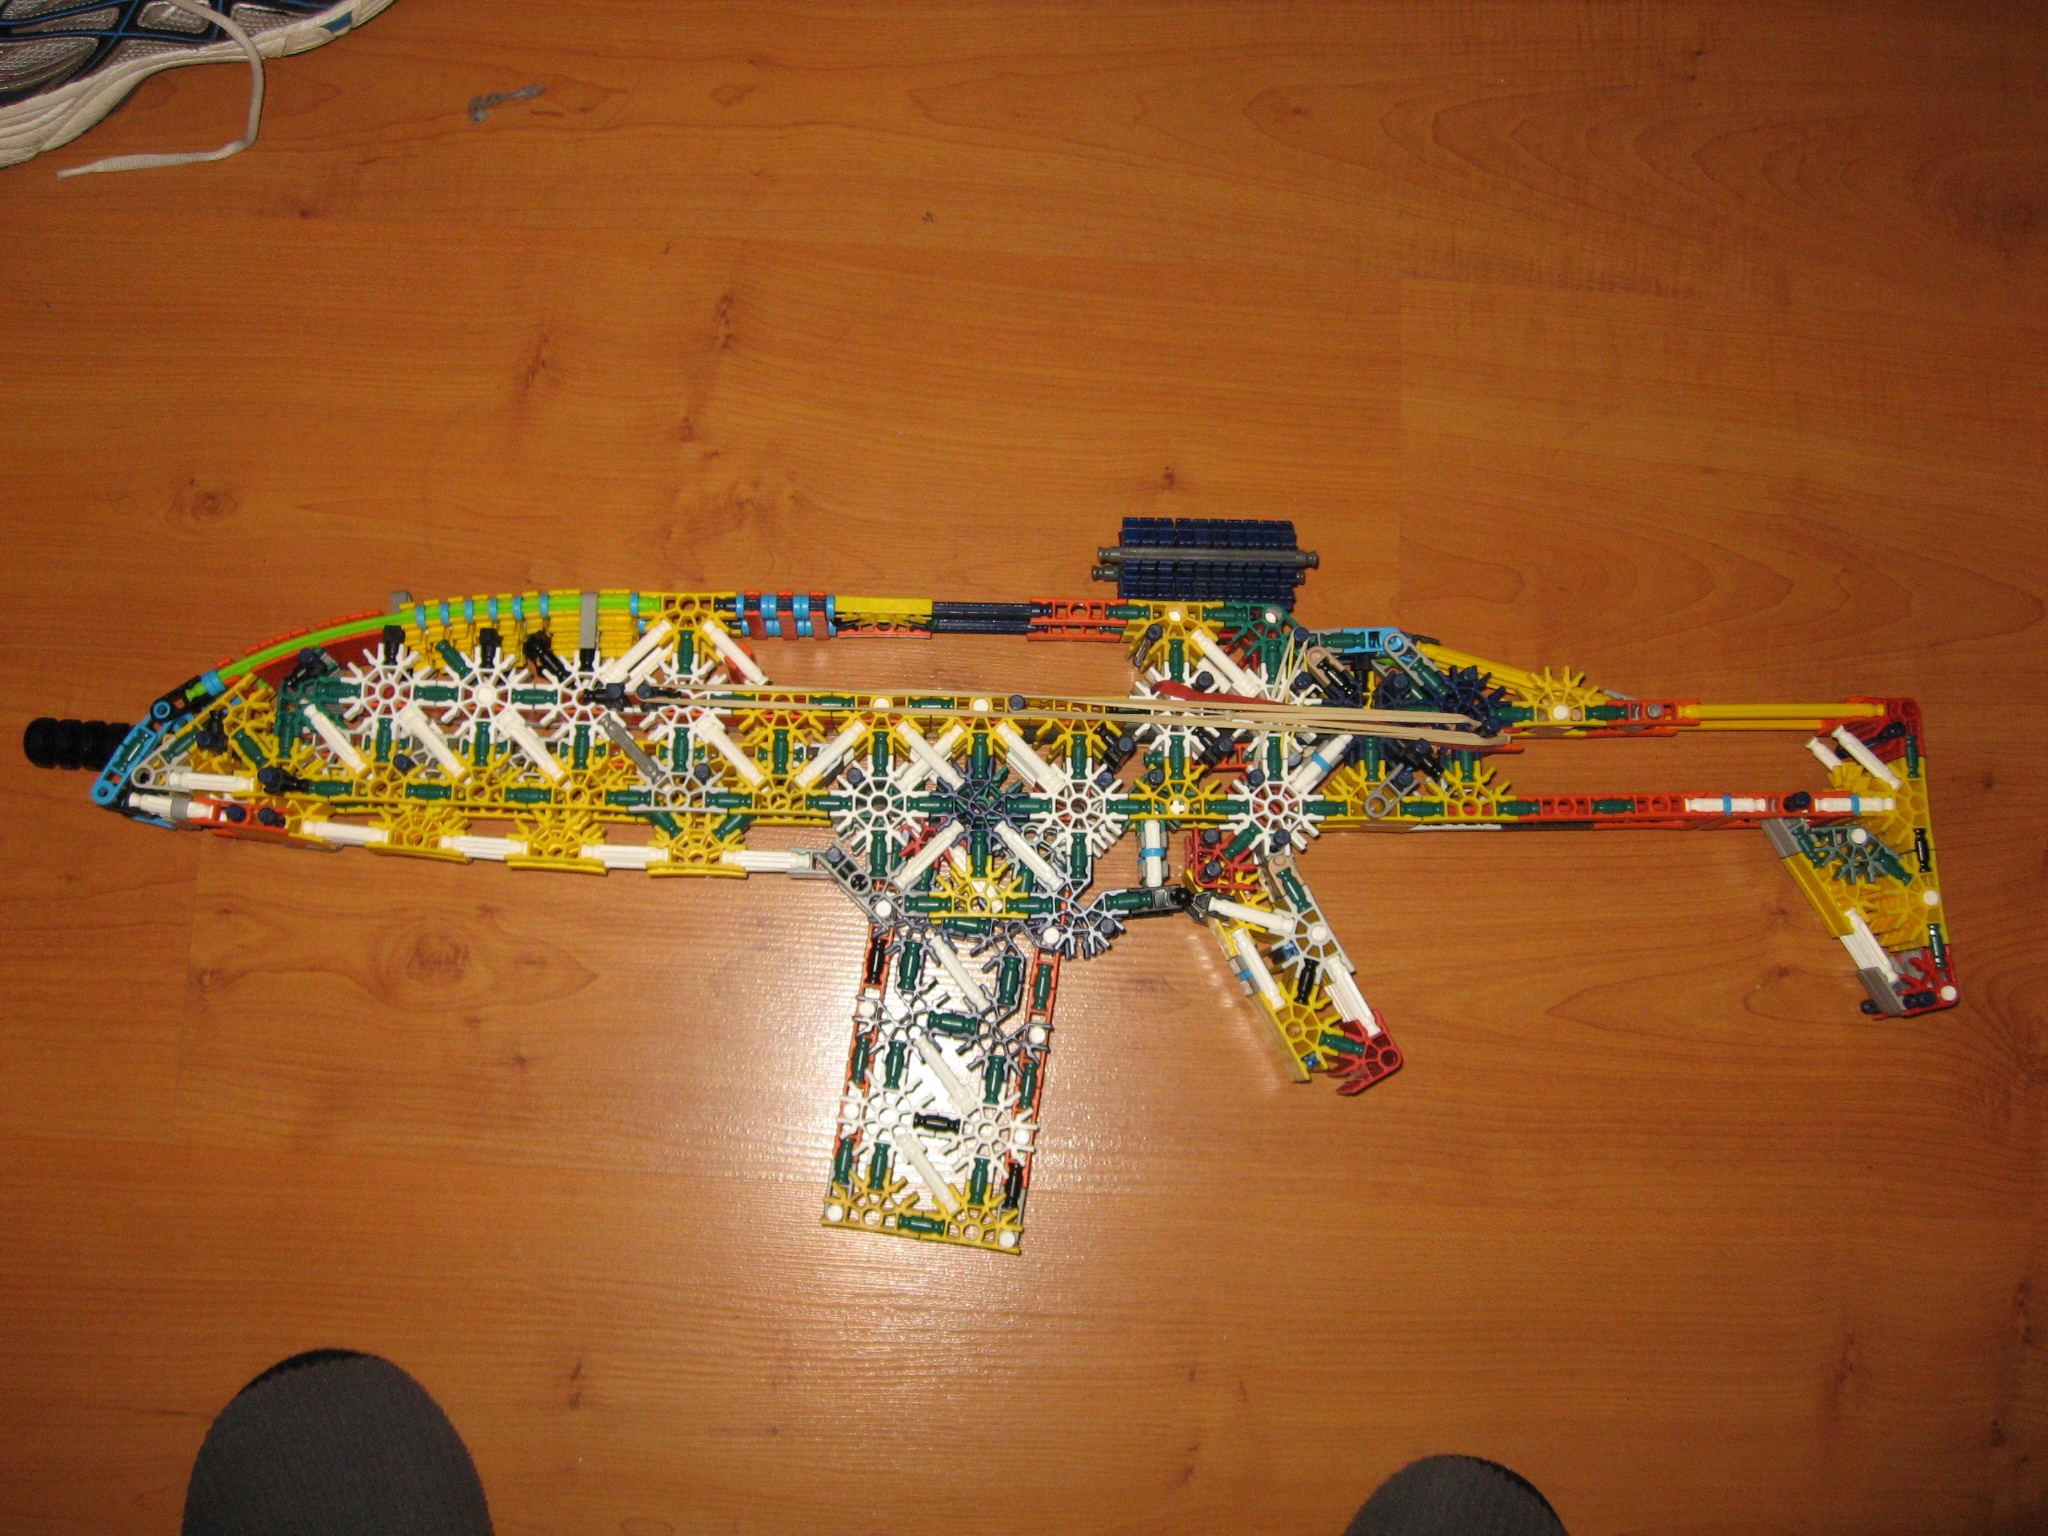 KNEX XM8 Assault Rifle